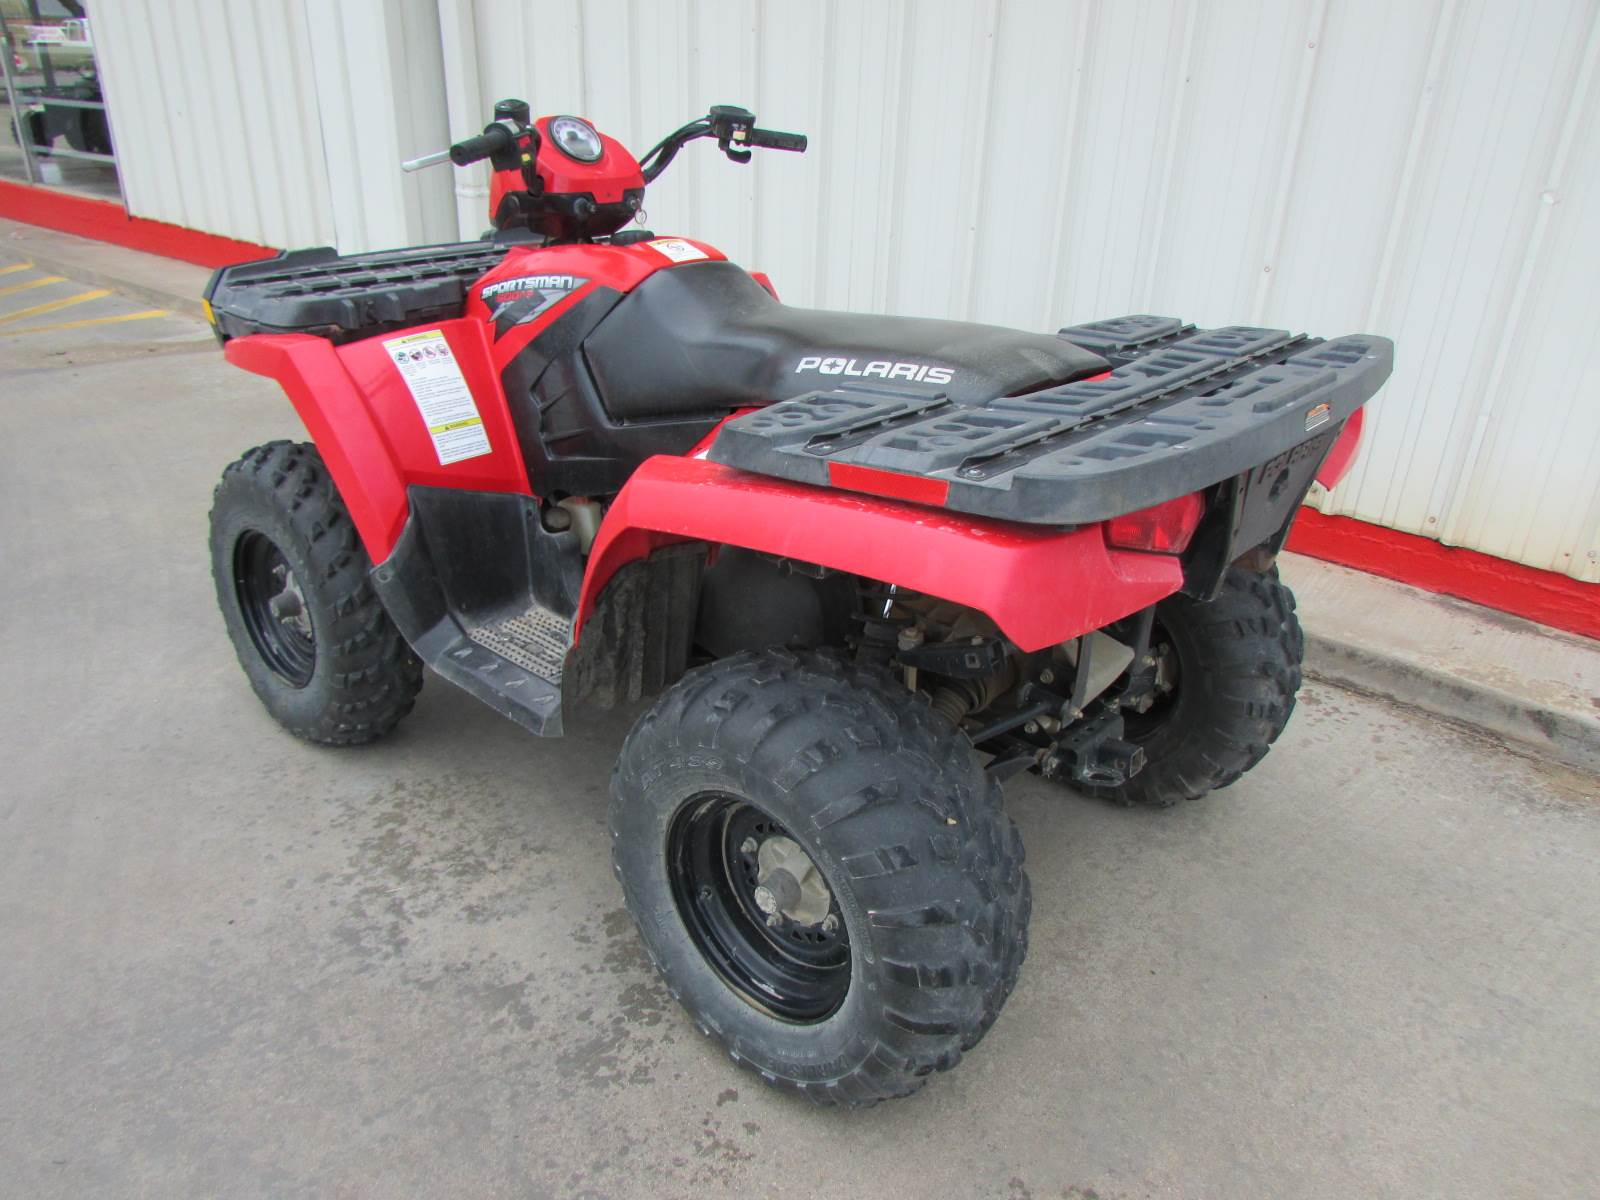 2010 Polaris Sportsman® 500 H.O. in Wichita Falls, Texas - Photo 6